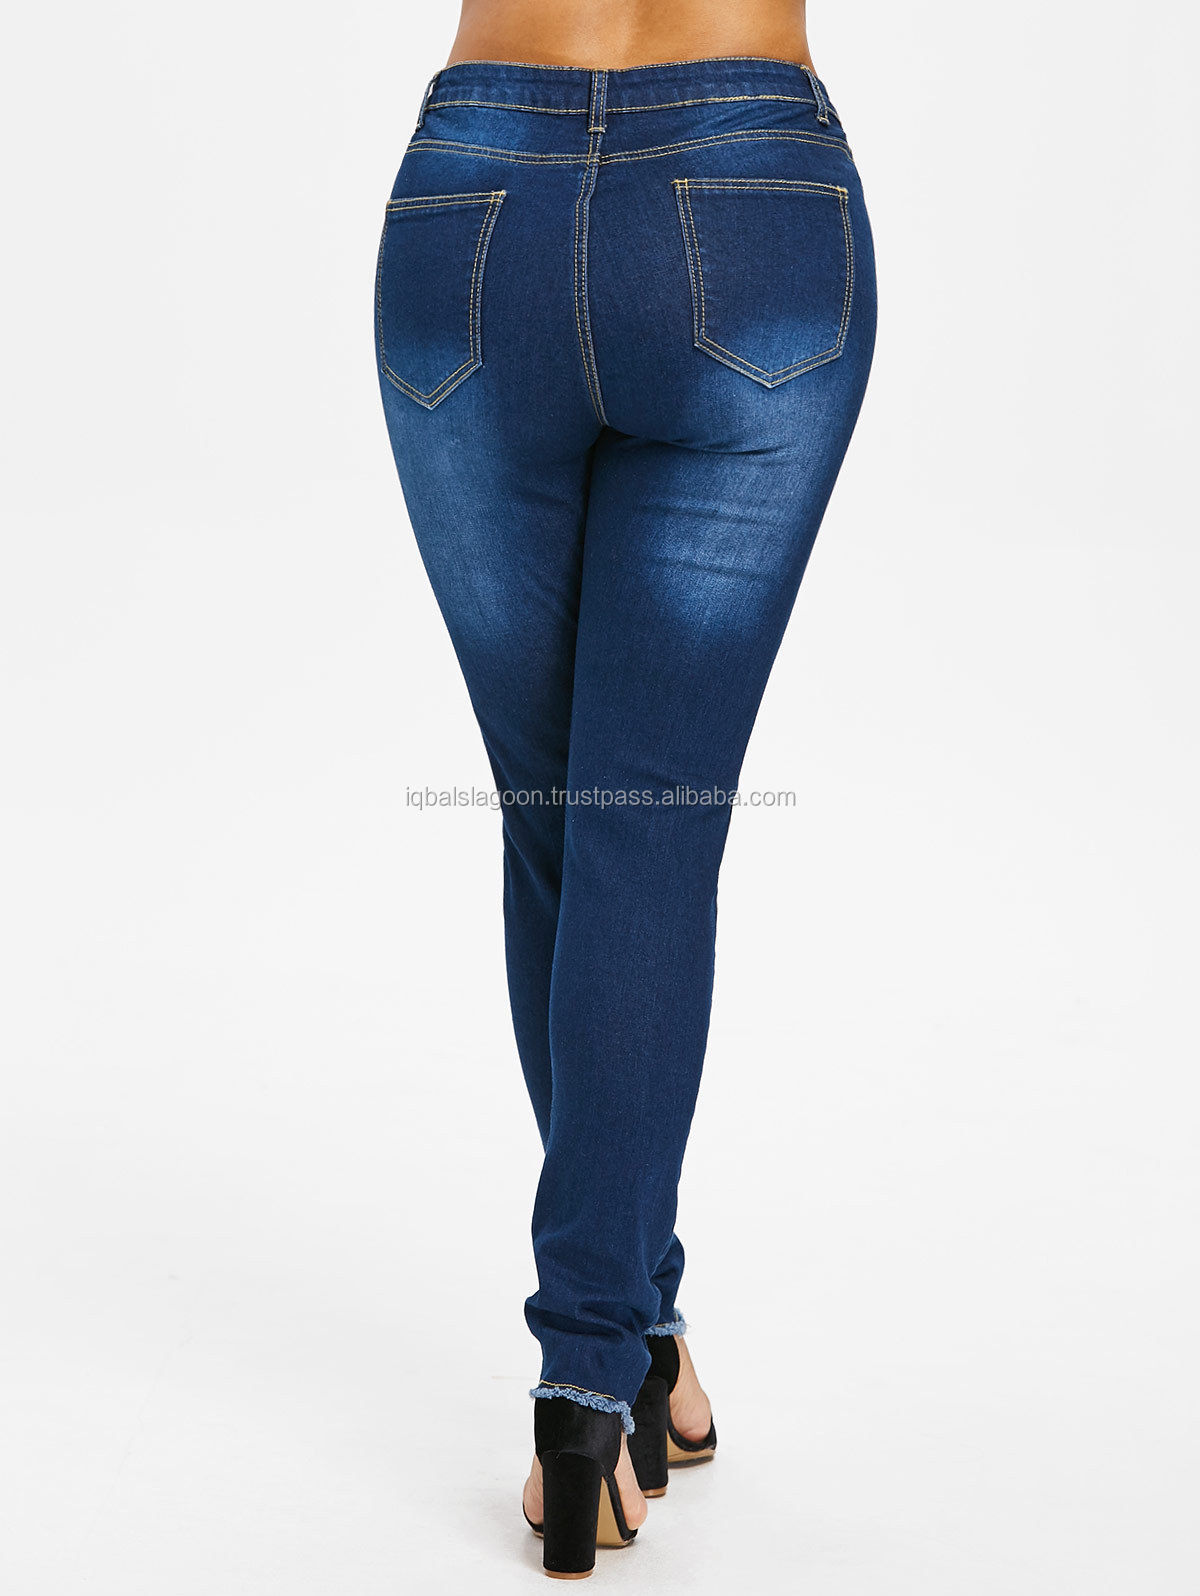 9c20bacaa3a Plus Size Womens Stretch Ripped Frayed Ladies High Waist Denim Pants Jeans